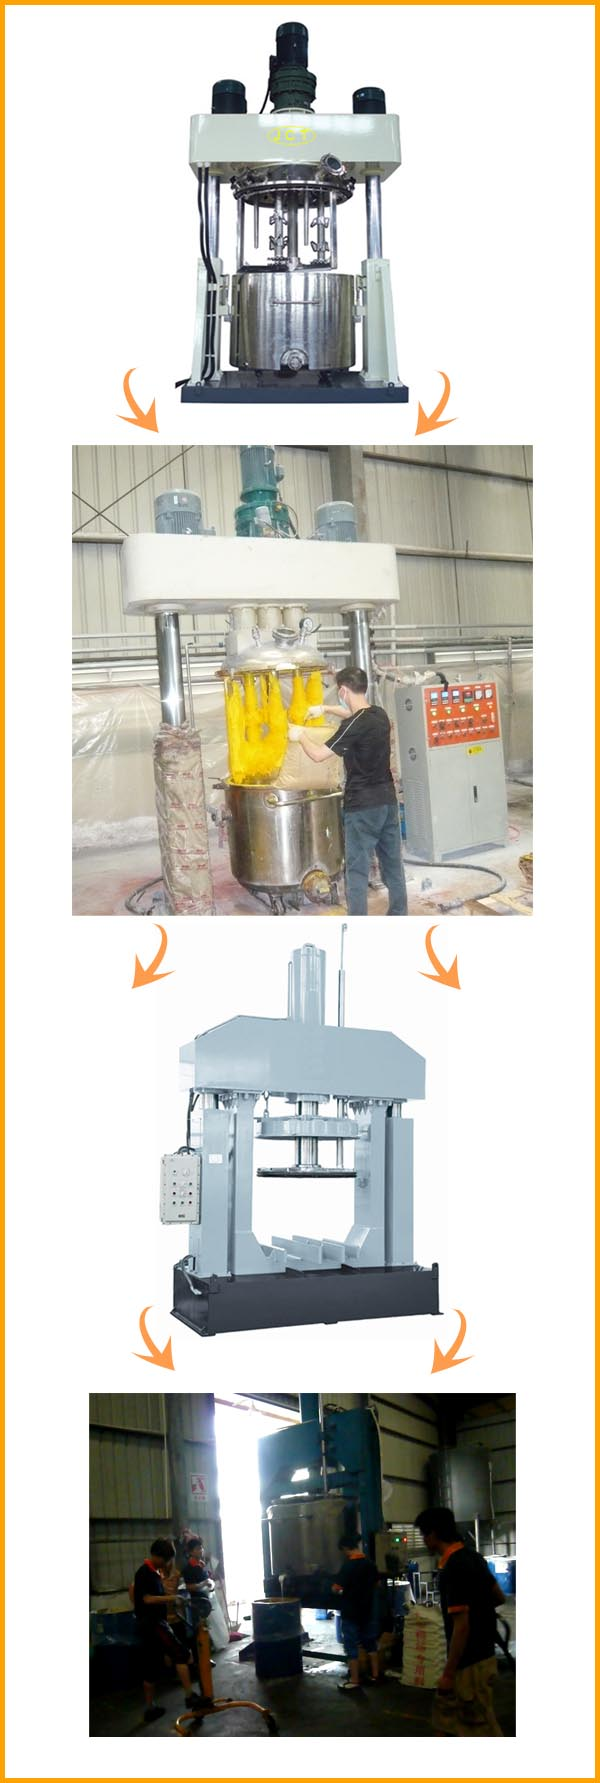 Production process of silicone sealant